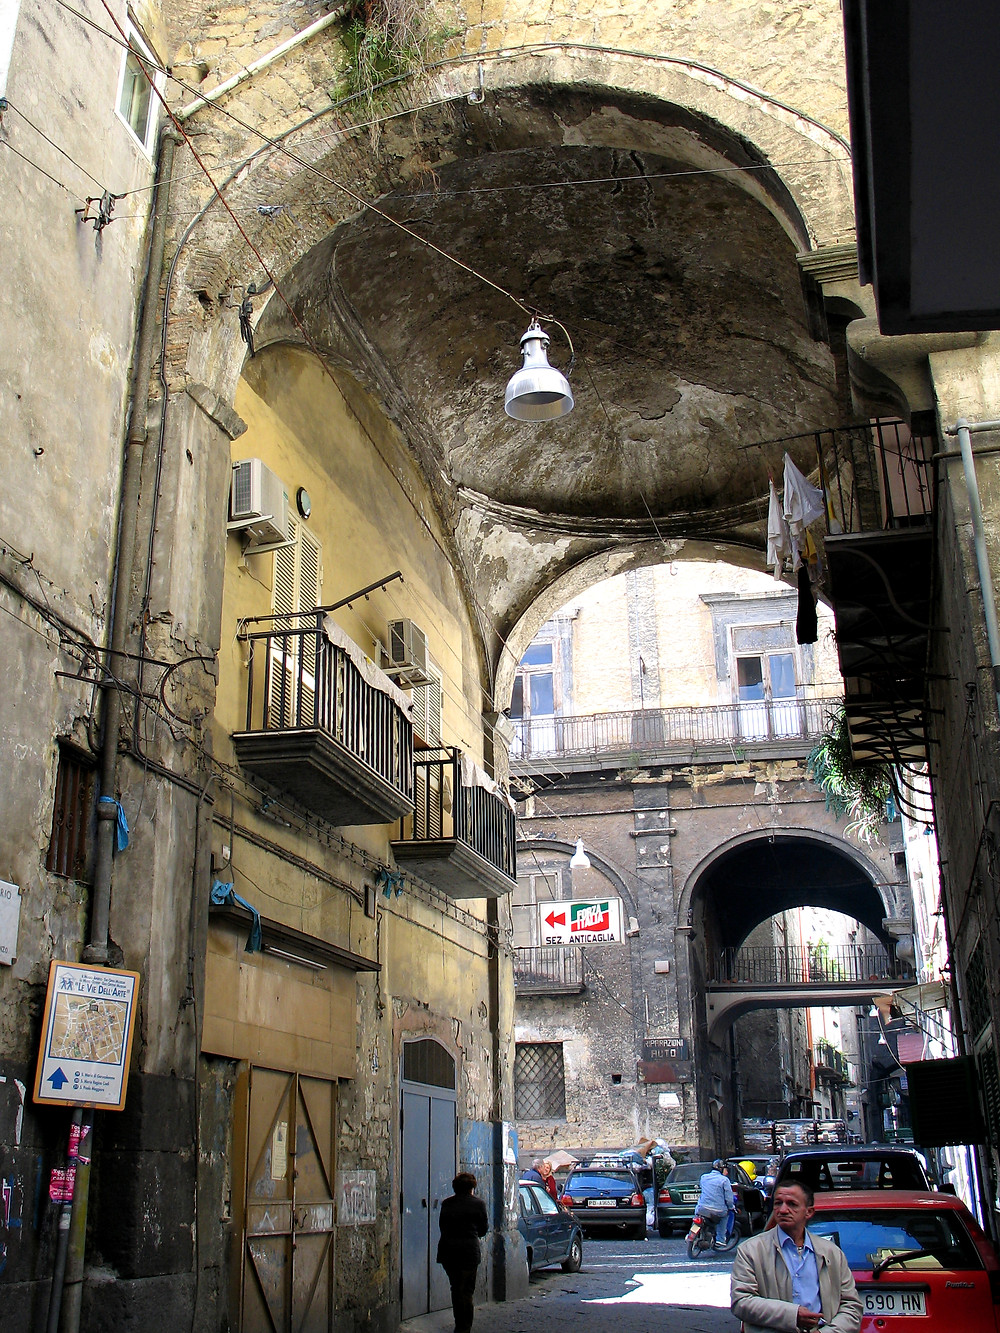 Typical side street near the oldest parts of the city of Naples.